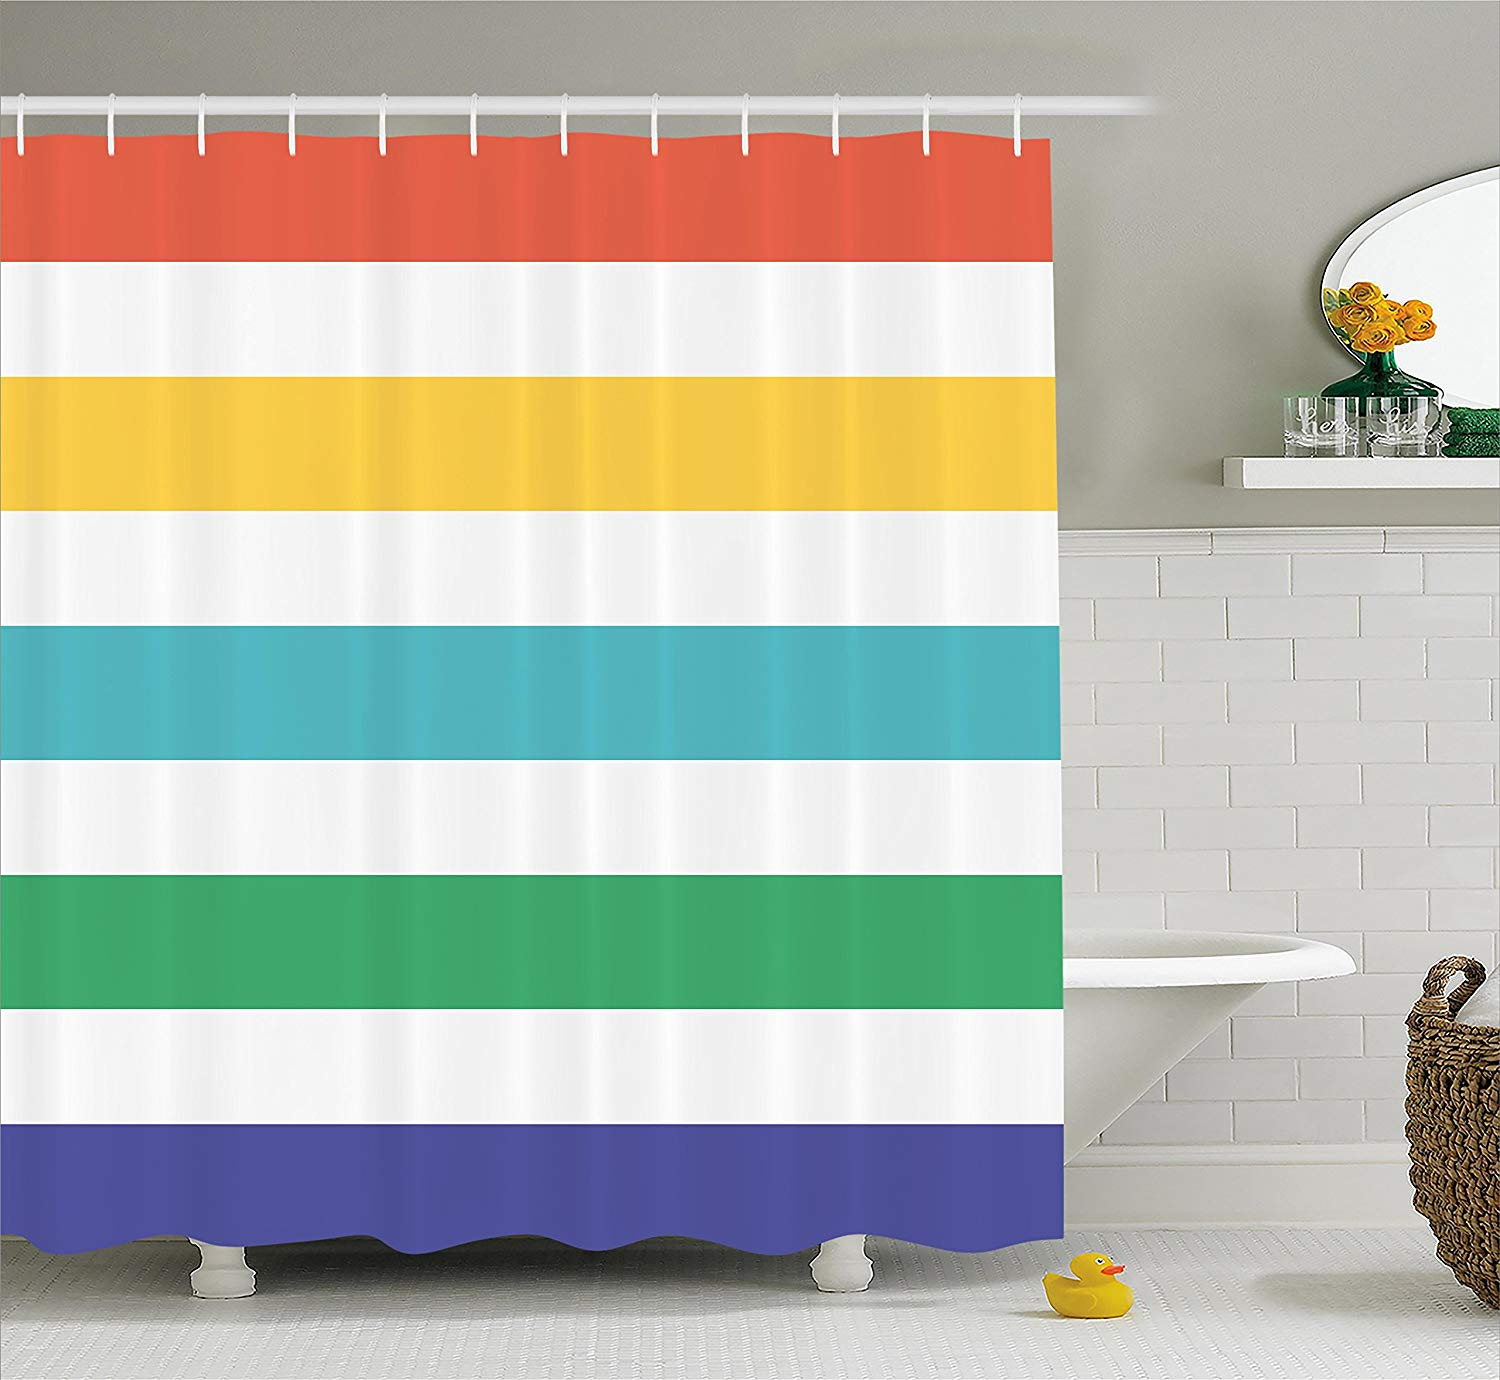 Striped Shower Curtain Rainbow Colored And White Fun Horizontal Lines Kids Room Red Yellow Blue Green Fabric Bathroom Decor